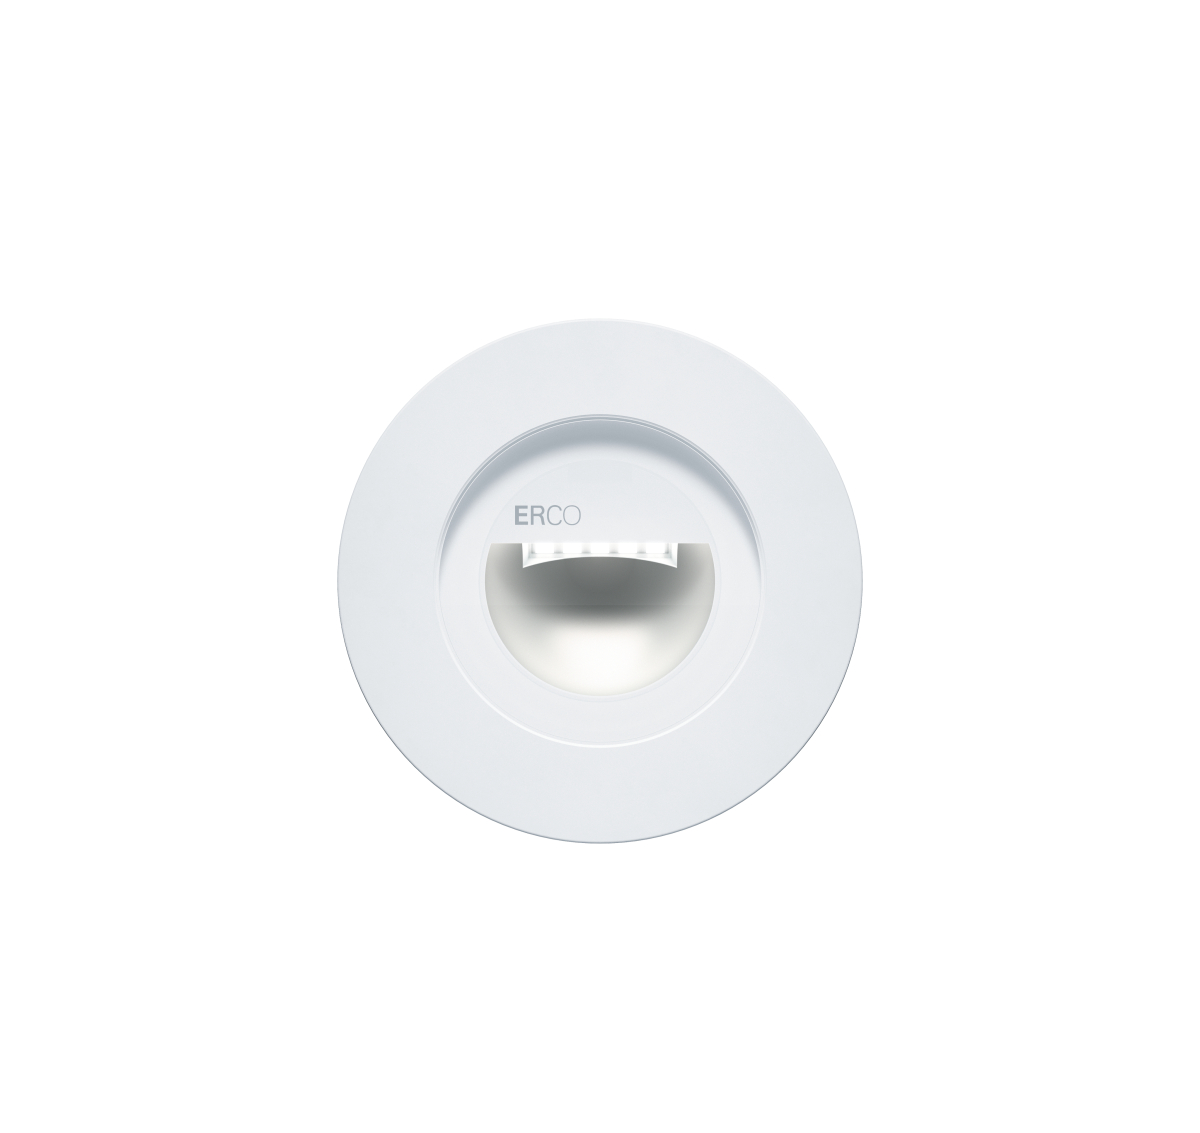 Erco floor washlights xs design eur 02